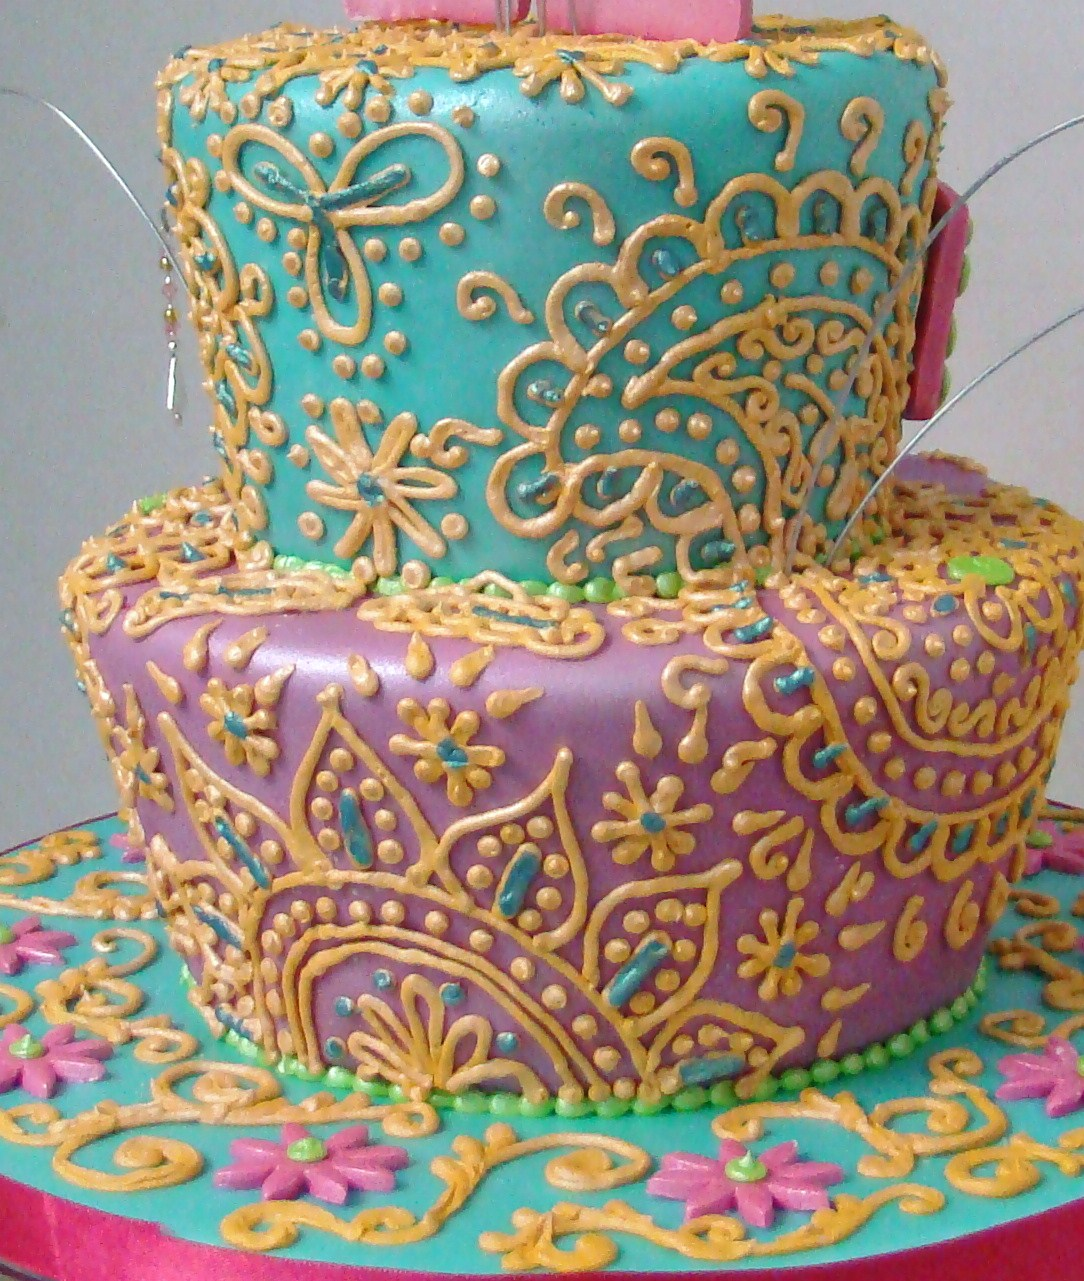 22nd Birthday Cake Designs: Sweet Cakes By Rebecca: Rock The Kasbah